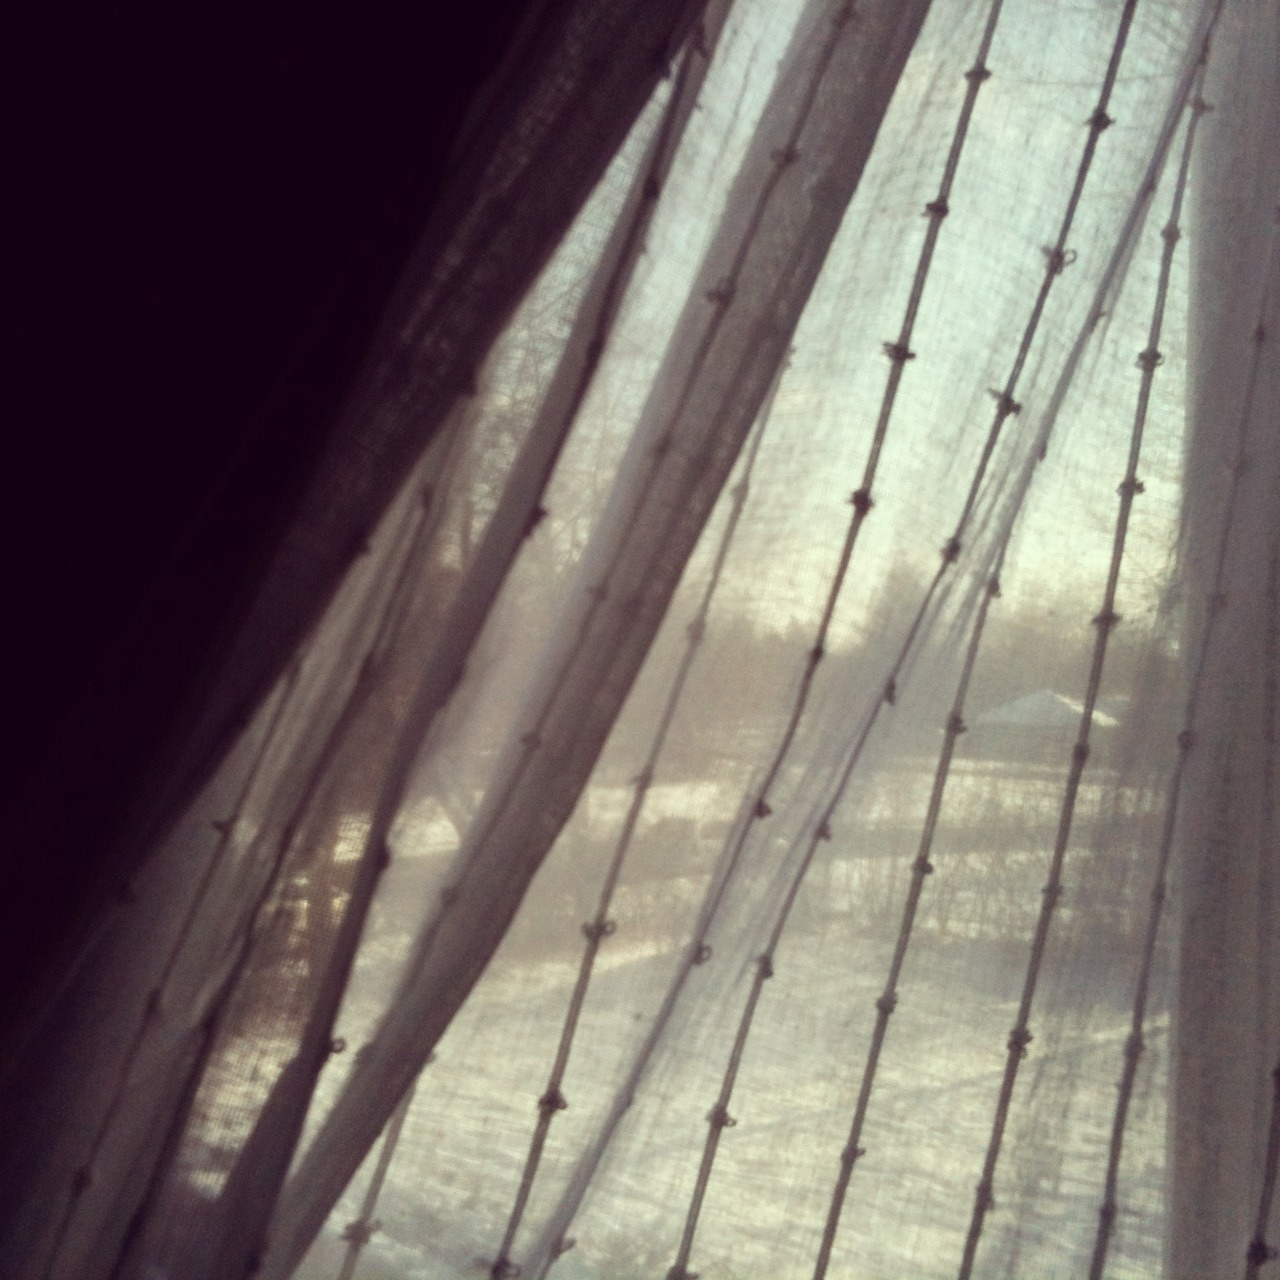 Gift of the Ordinary #2 The soothing shade of curtains drawn. The light softens, transforms the room into a bluish early morning gray. And my eyes can relax, the stress clenching my mind ease as the tiredness of this world is shut out by the simple draping of a cloth.